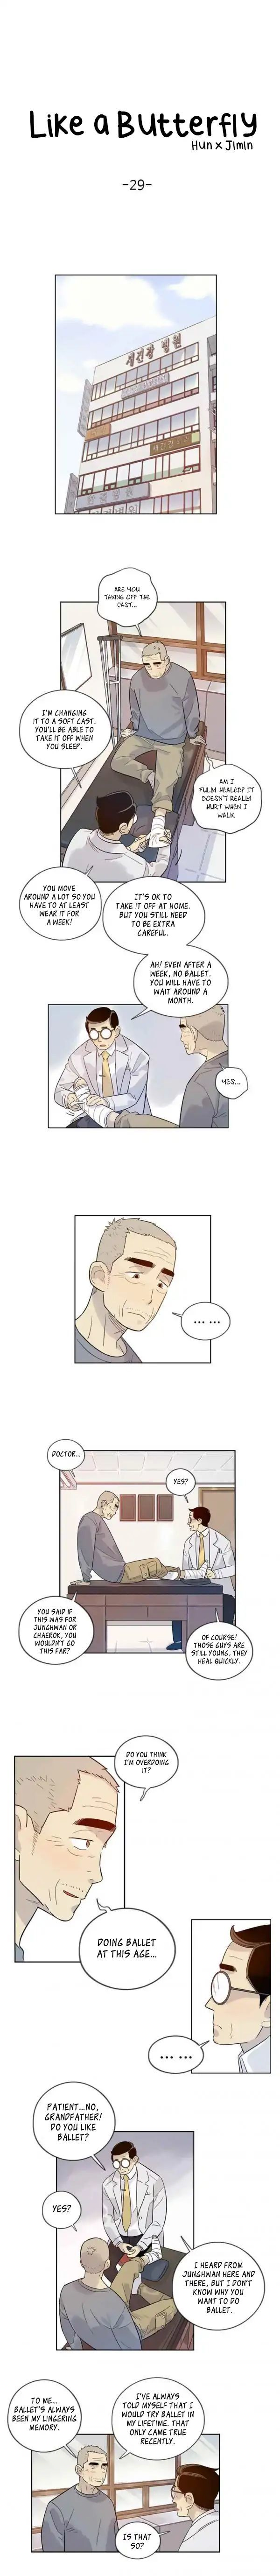 https://img2.nineanime.com/comics/pic1/49/16881/560986/LikeaButterfly290392.jpg Page 1